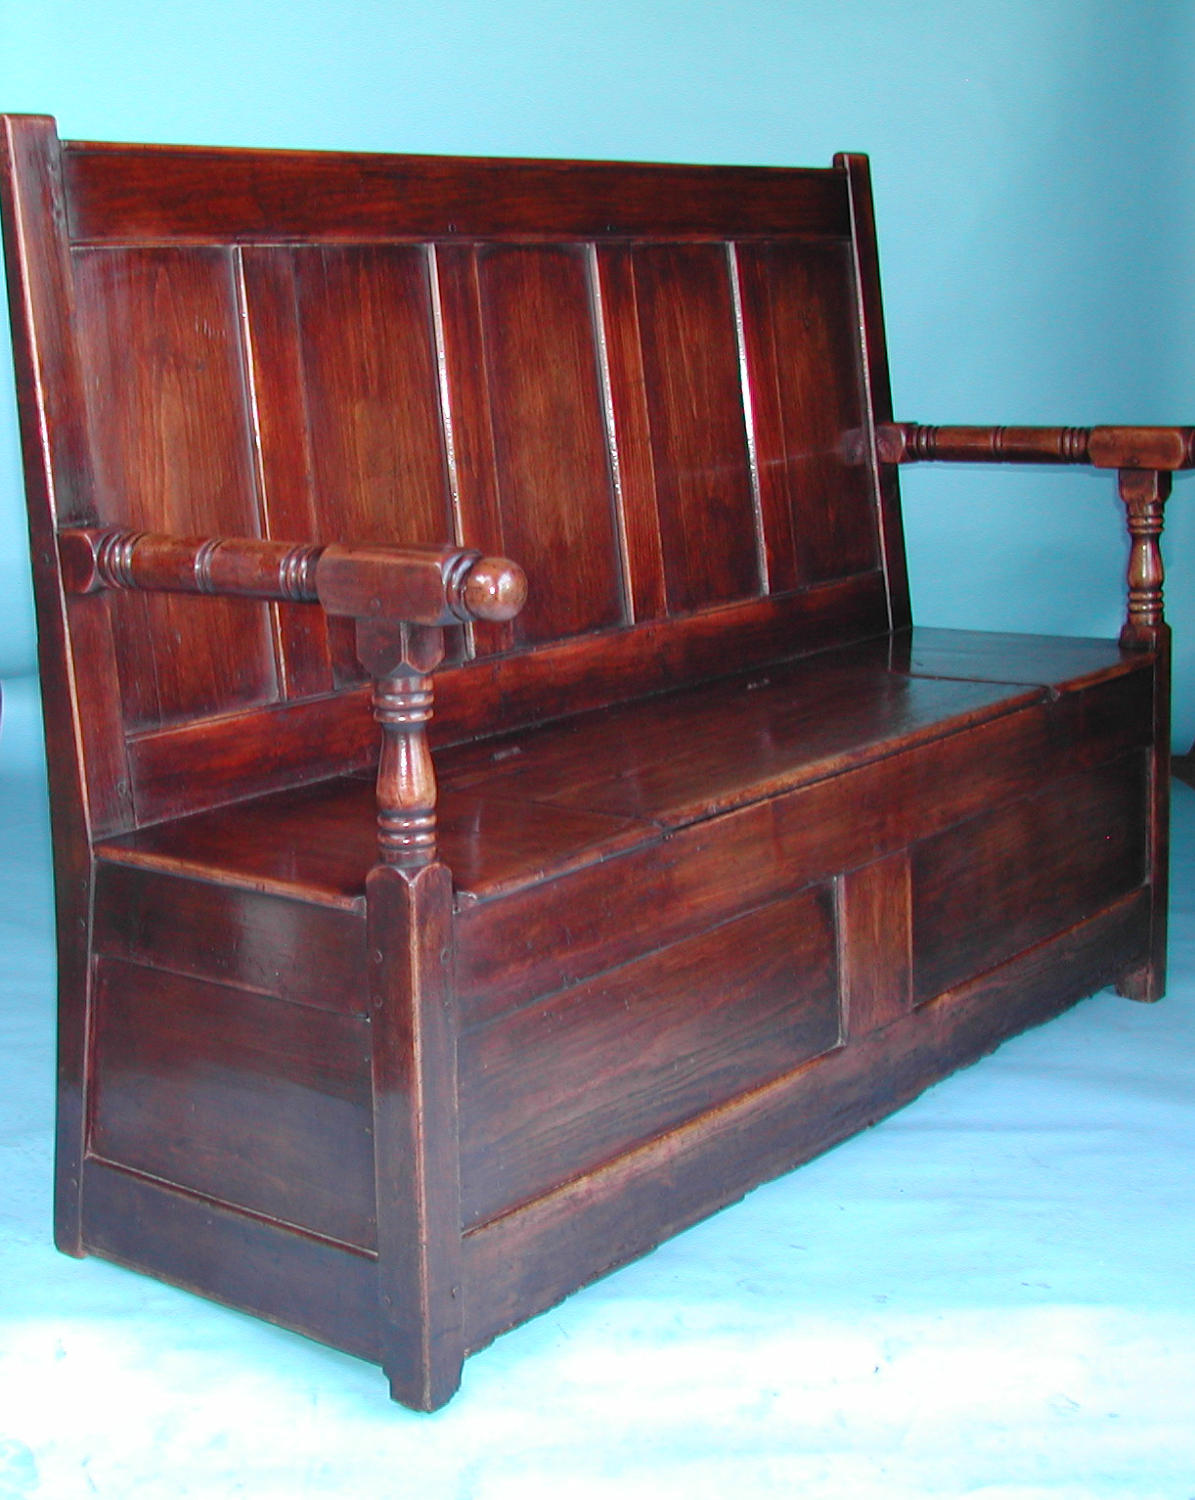 Antique 18thc Furniture Pine & Fruitwood Box Settle. English C1780-90